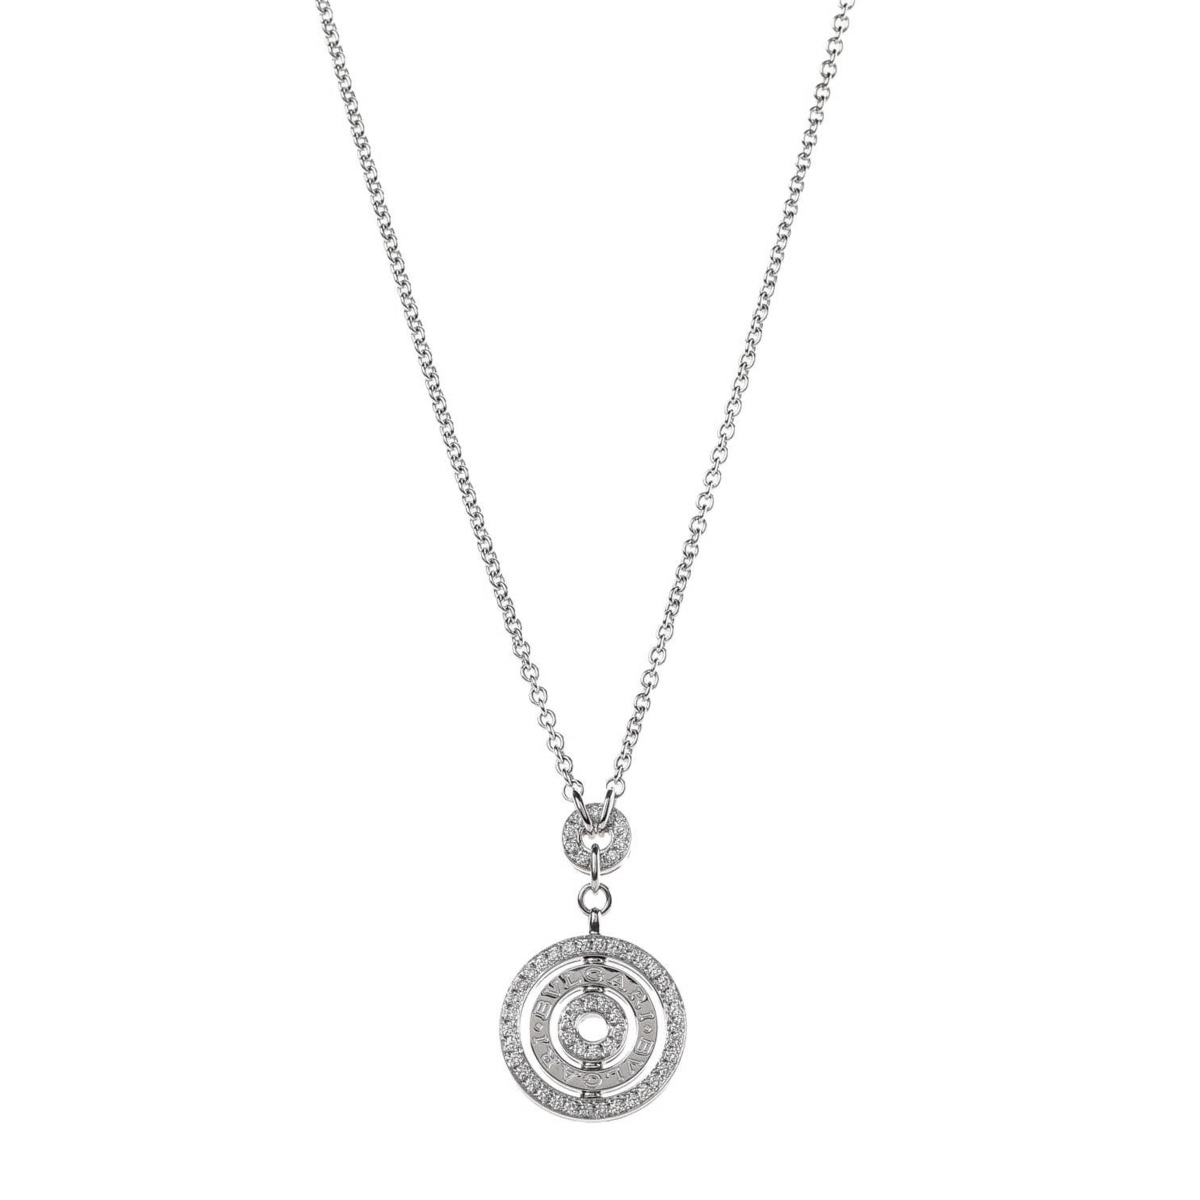 Bulgari Astrale Cerci Diamond White Gold Necklace - Bulgari Jewelry